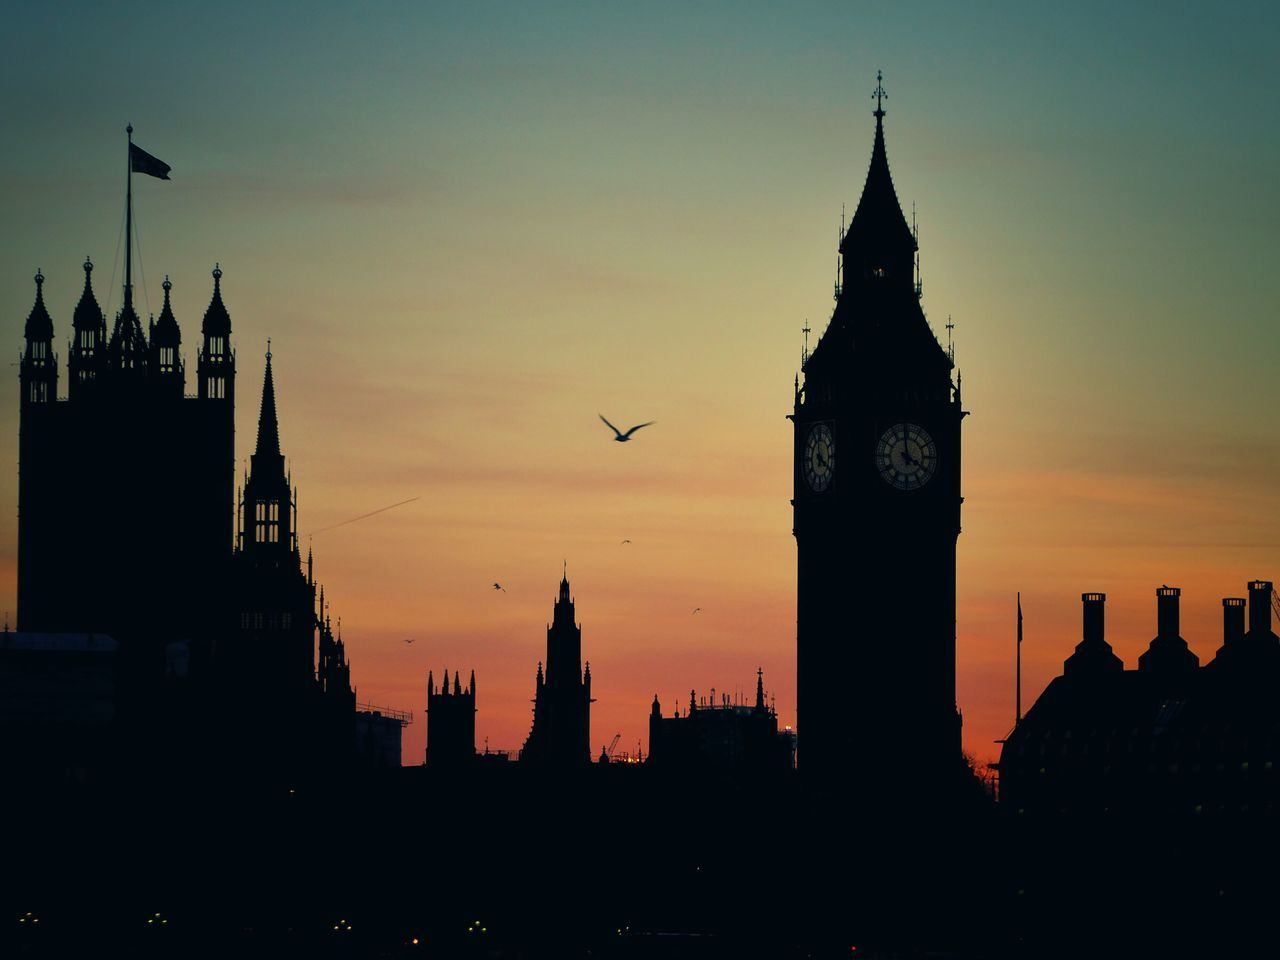 Big Ben London Westminster Architecture City Built Structure Orange Color Silhouette Tower Clock Bird Clock Tower Travel Destinations Sky Cityscape Sunset Sunset_collection Sunset Silhouettes British Britain United Kingdom EyeEmNewHere